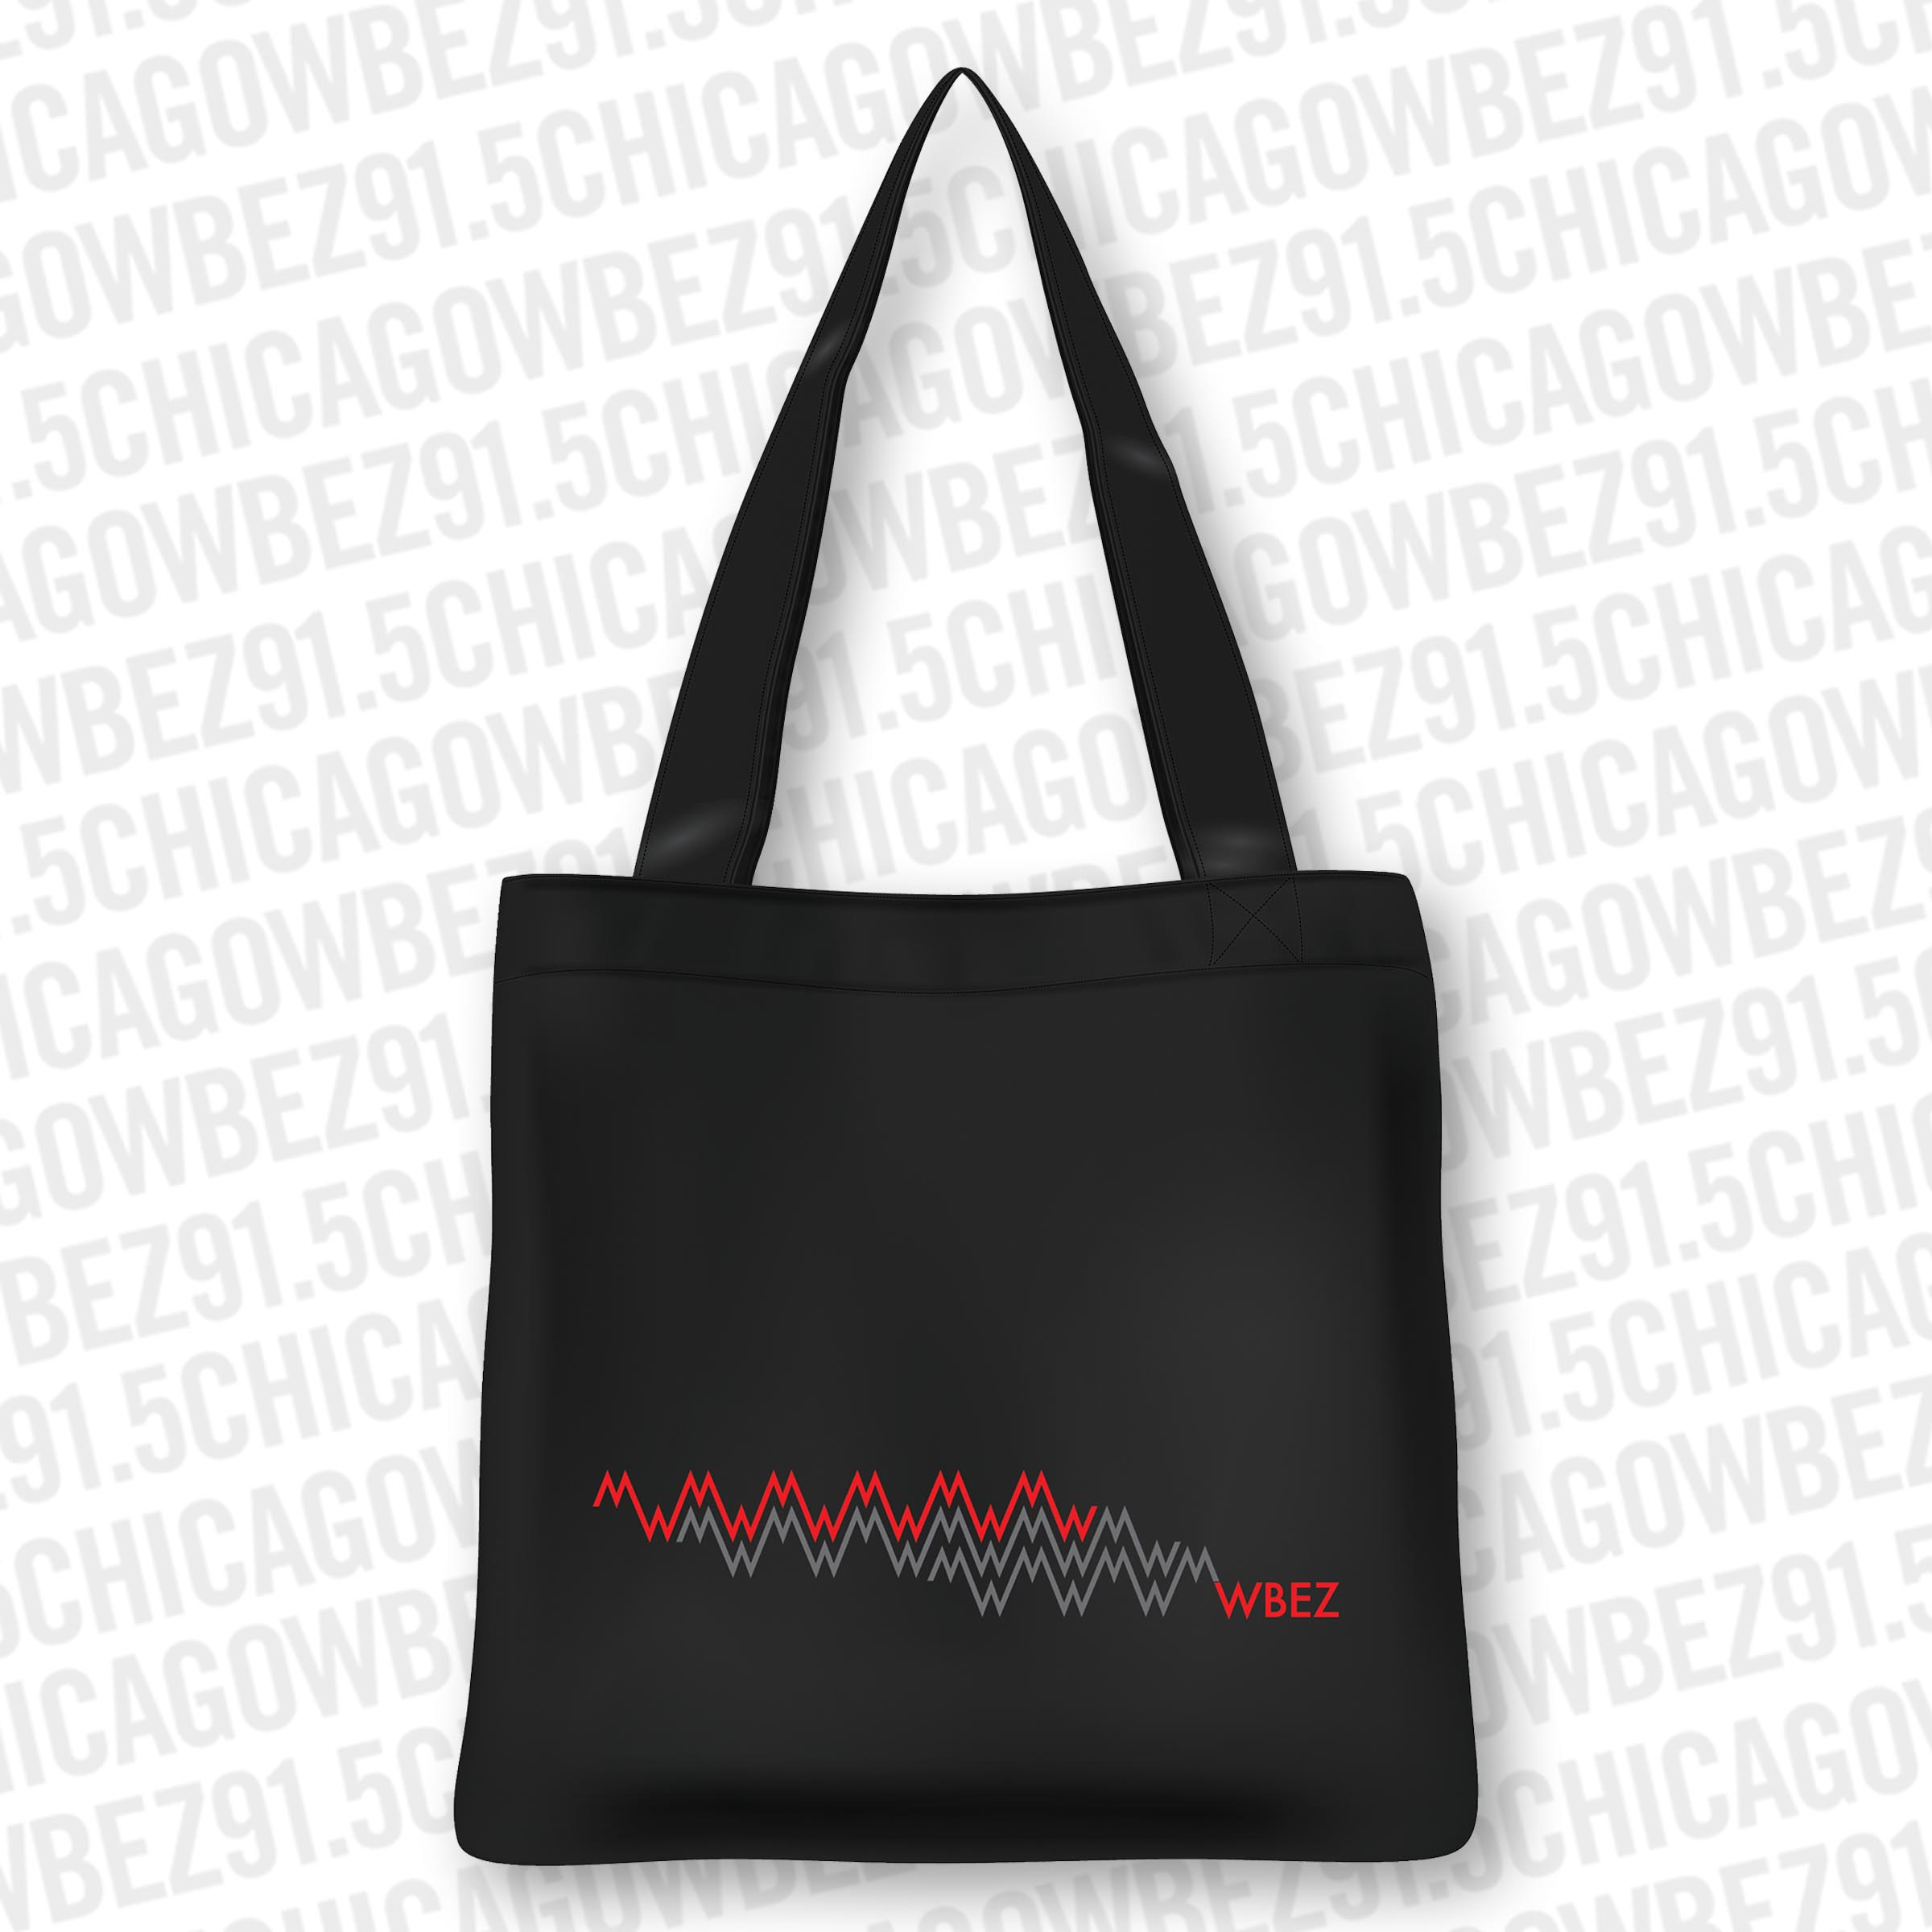 WBEZ Sound Wave Tote